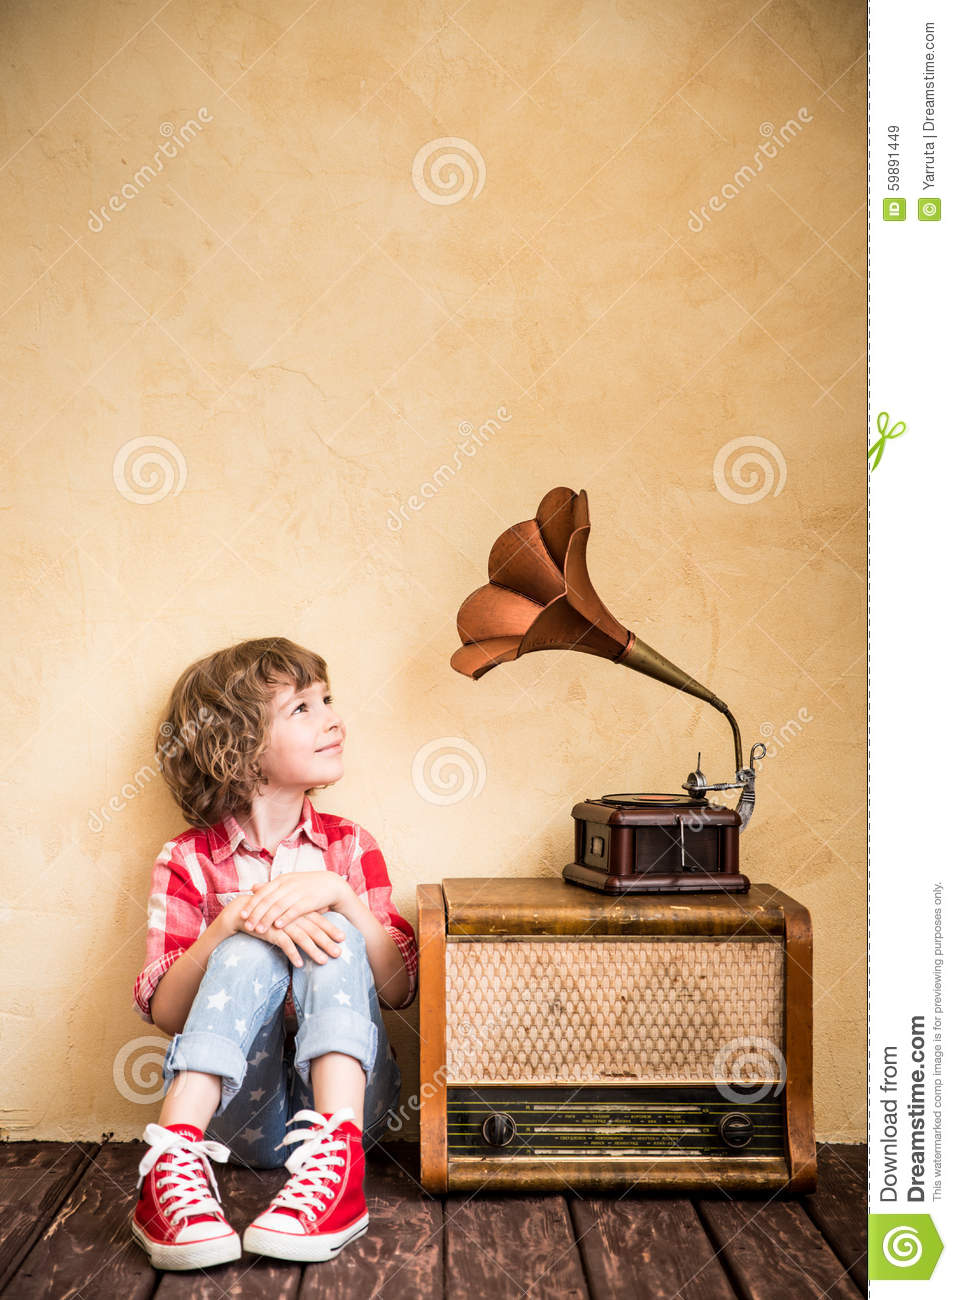 Retro music concept stock photo image 59891449 for Retro house music